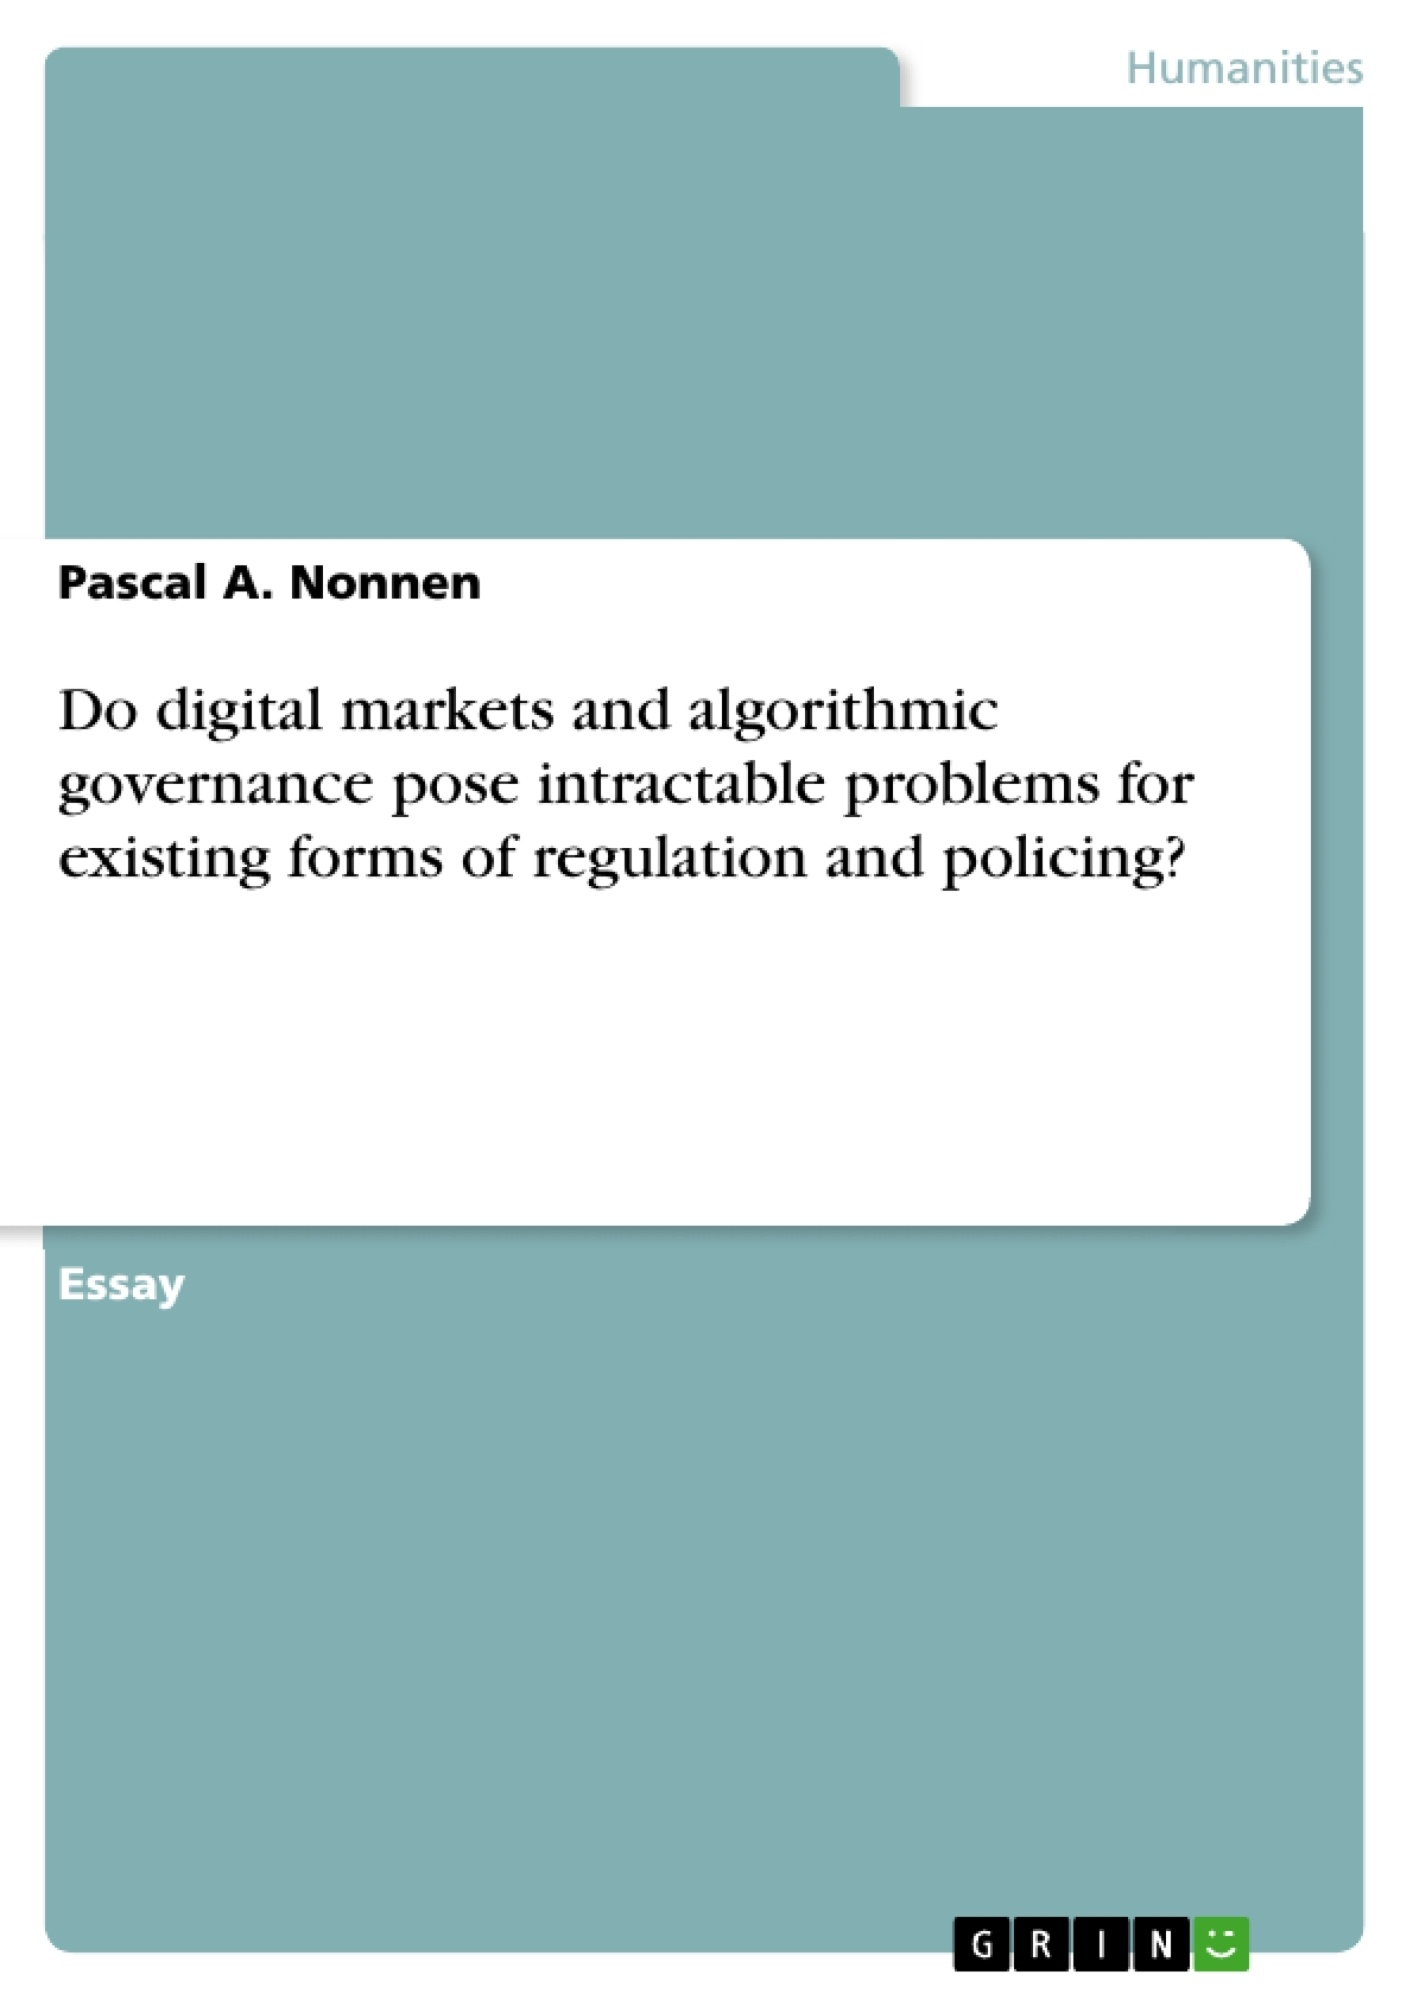 Title: Do digital markets and algorithmic governance pose intractable problems for existing forms of regulation and policing?